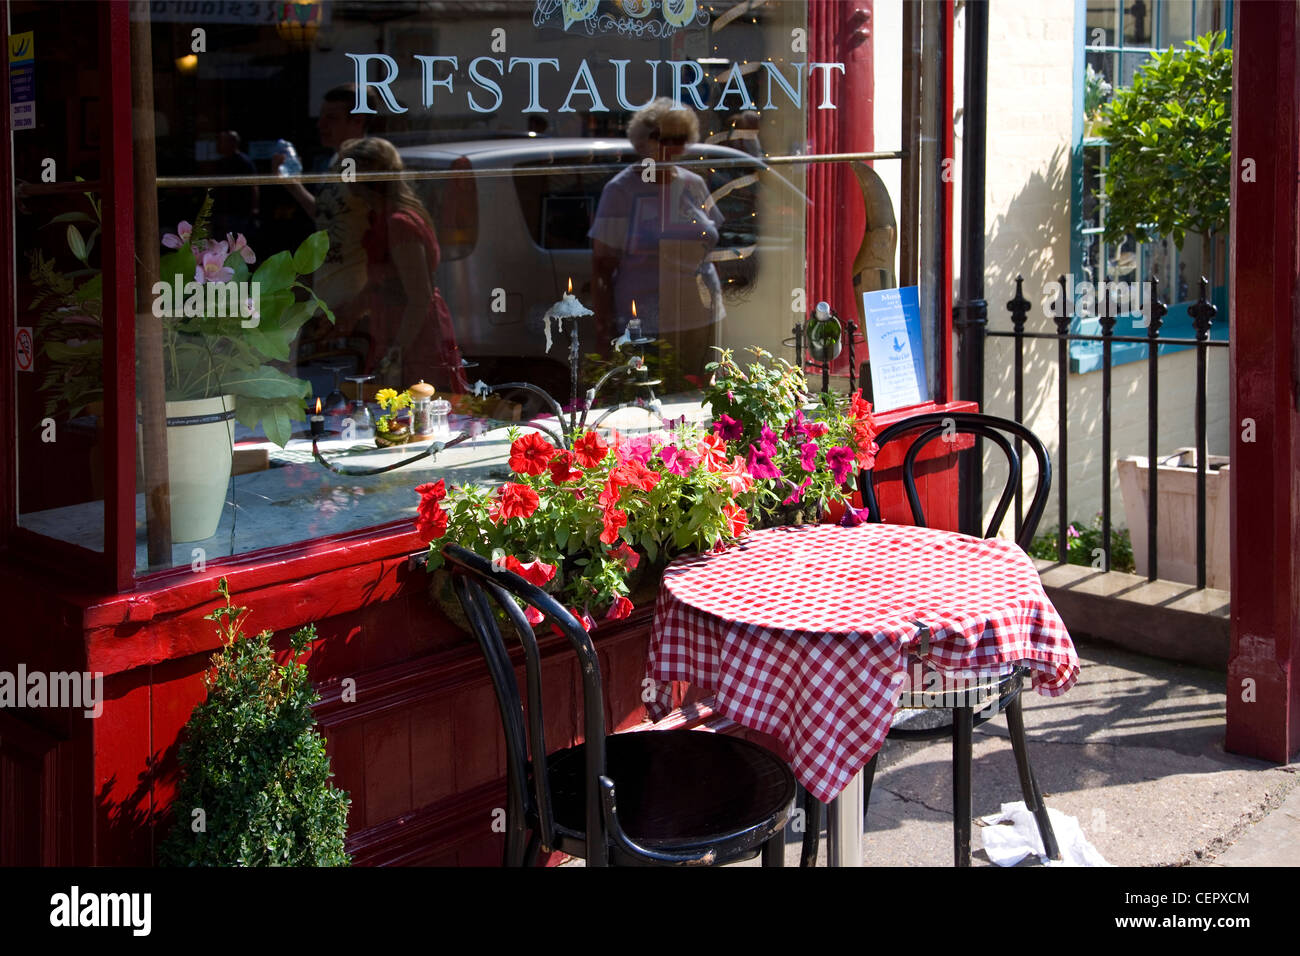 A table with a red and white chequered table cloth outside a small restaurant in Whitstable town centre. - Stock Image